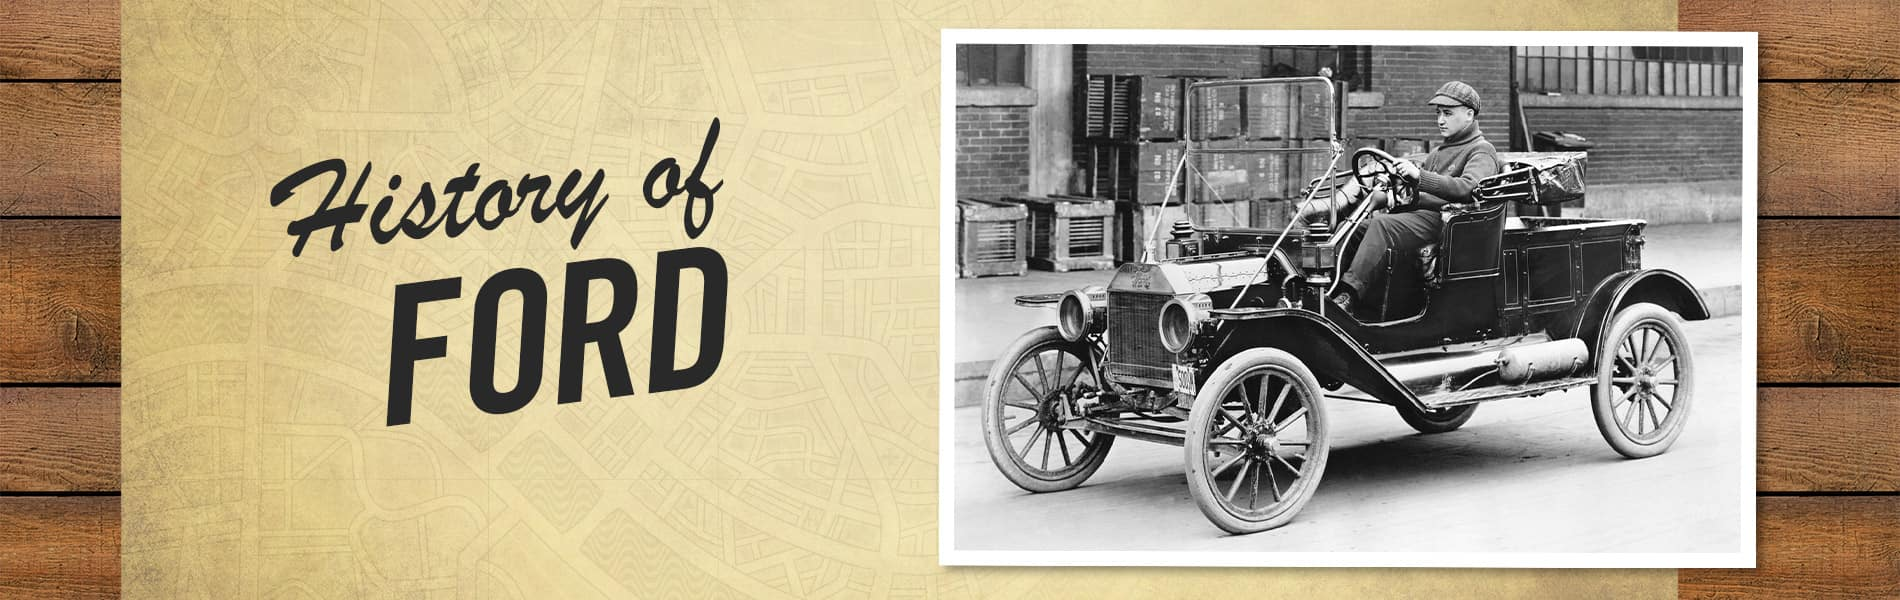 History of Ford | Fort Wayne, IN